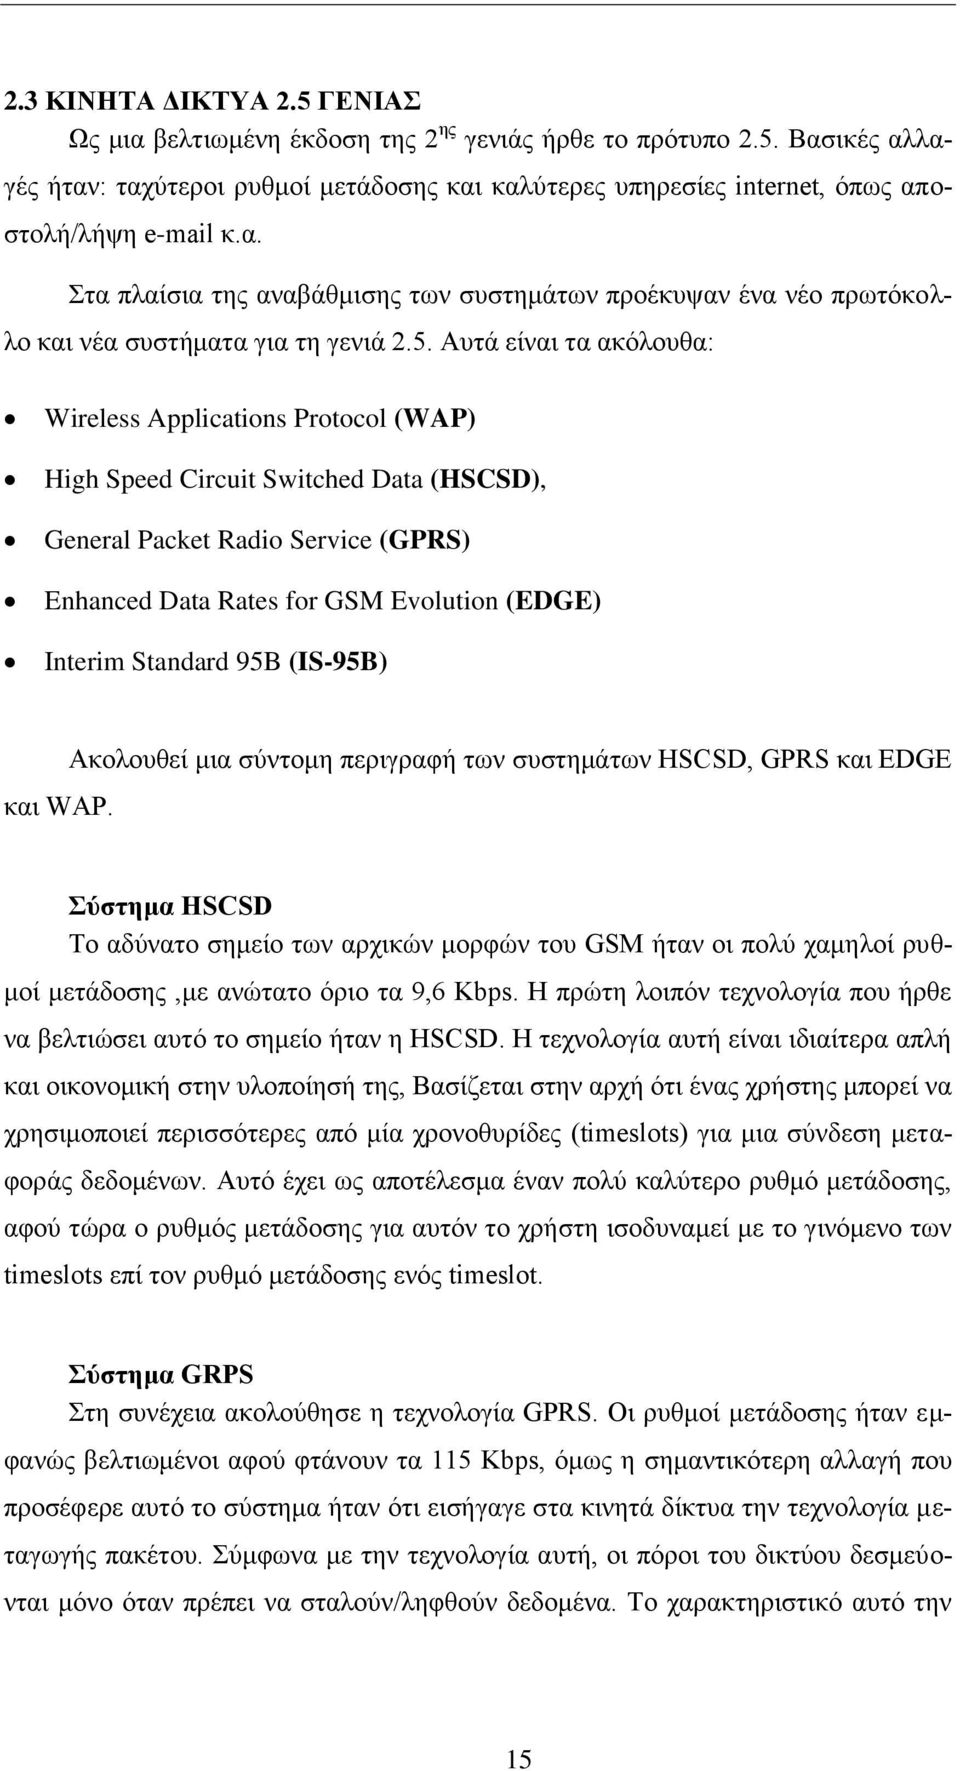 Αυτά είναι τα ακόλουθα: Wireless Applications Protocol (WAP) High Speed Circuit Switched Data (HSCSD), General Packet Radio Service (GPRS) Enhanced Data Rates for GSM Evolution (EDGE) Interim